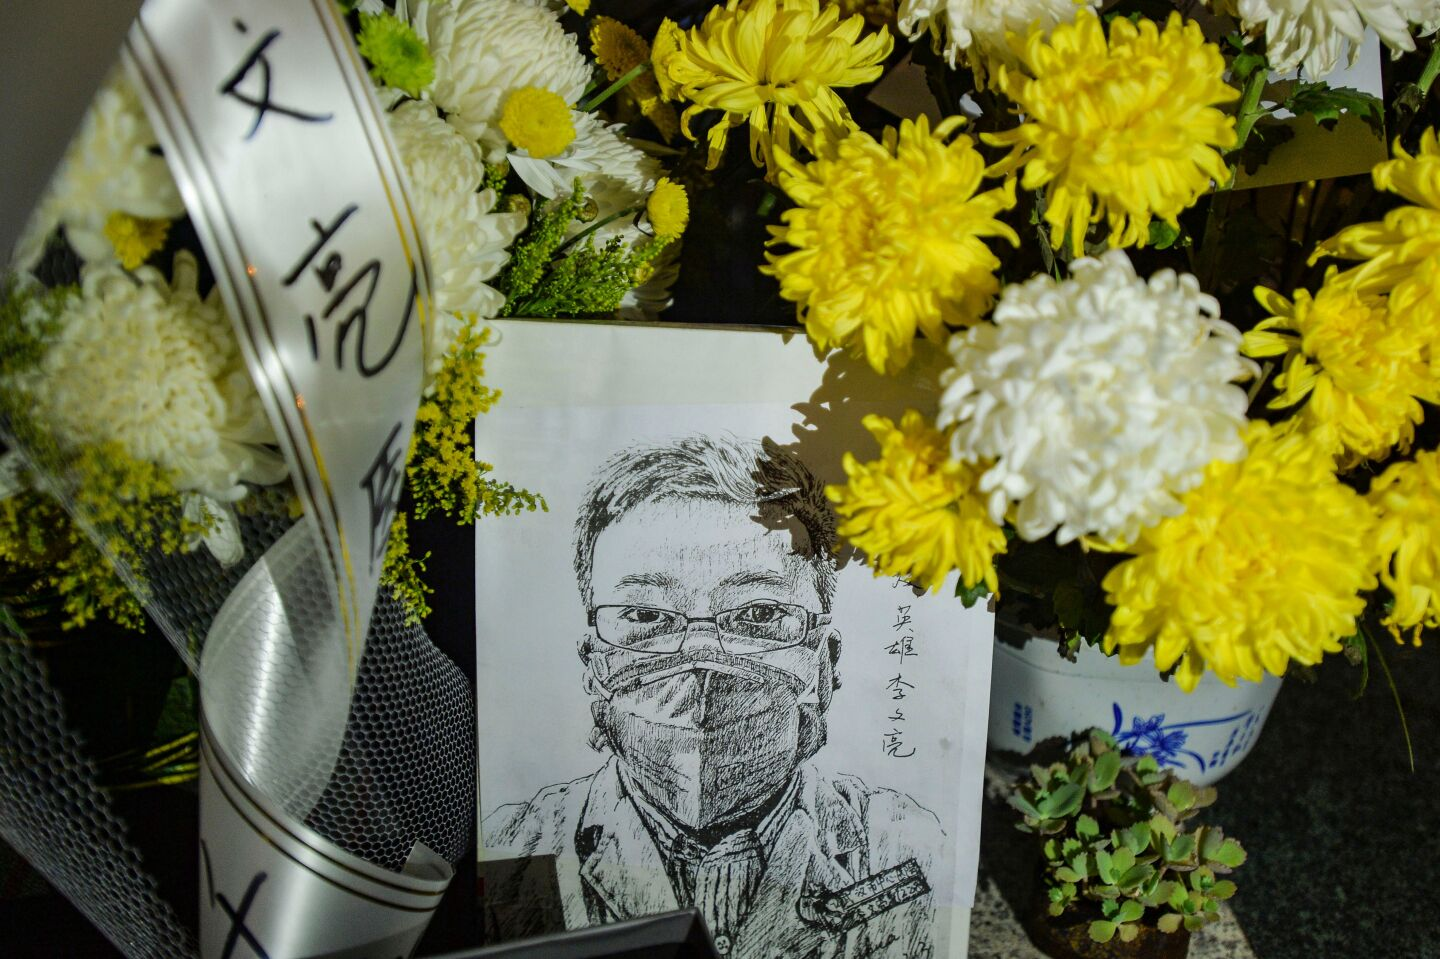 A memorial with flower bouquets honoring the late ophthalmologist Li Wenliang, who died after becoming infected with SARS-CoV-2, at the Houhu Branch of Wuhan Central Hospital in Wuhan in China's central Hubei province.